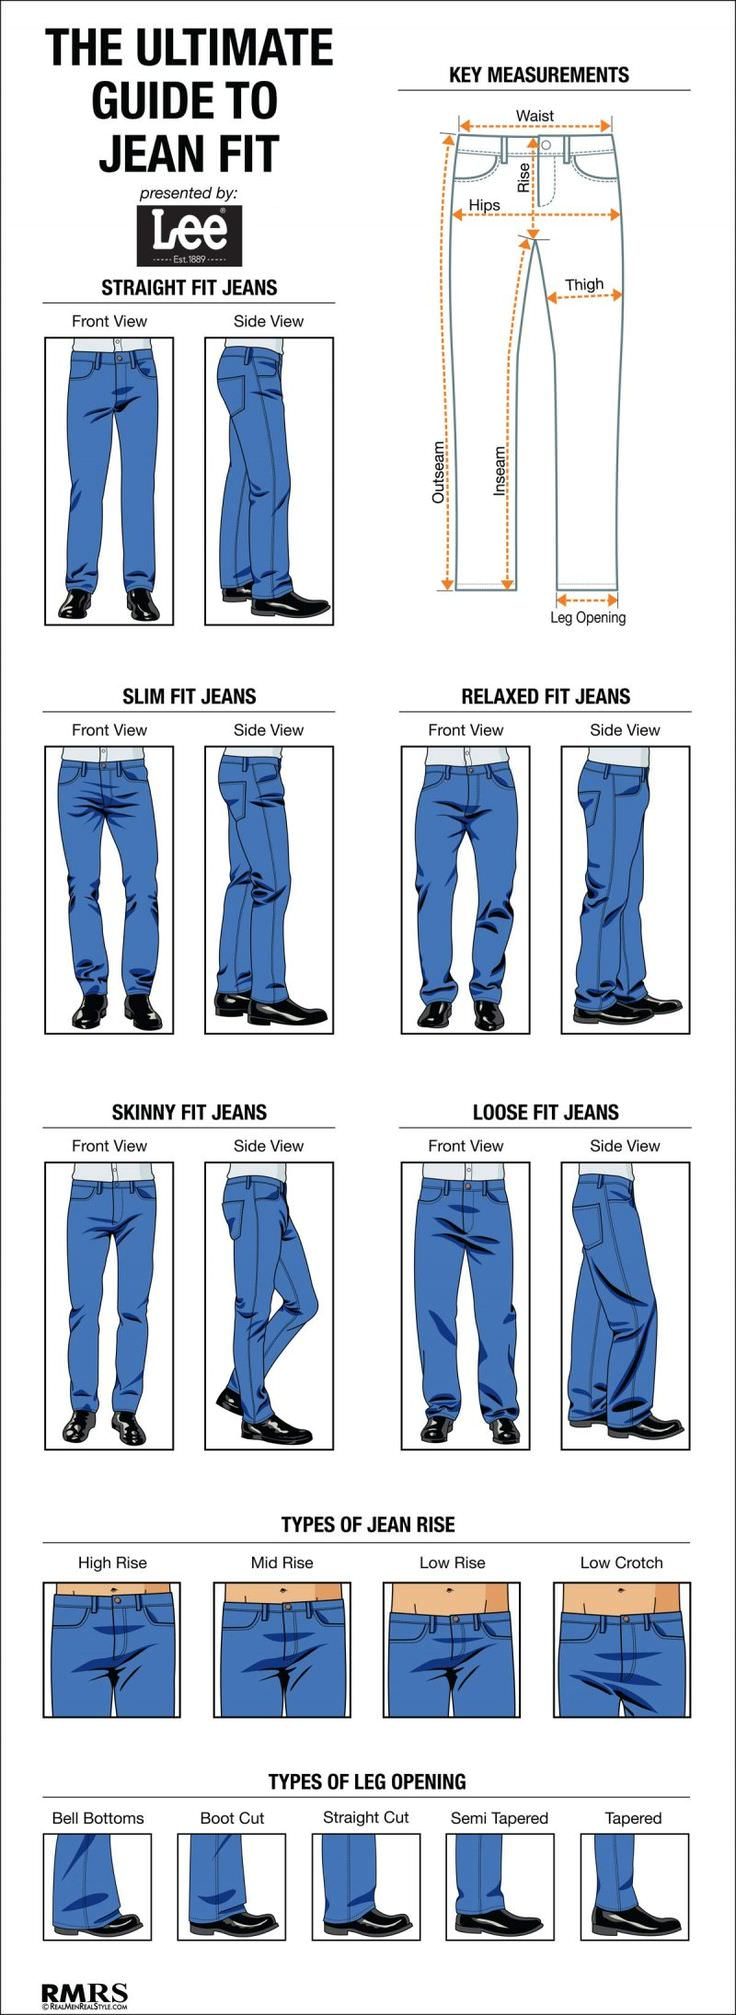 Men's jeans fitting guide, how to know jeans fit properly